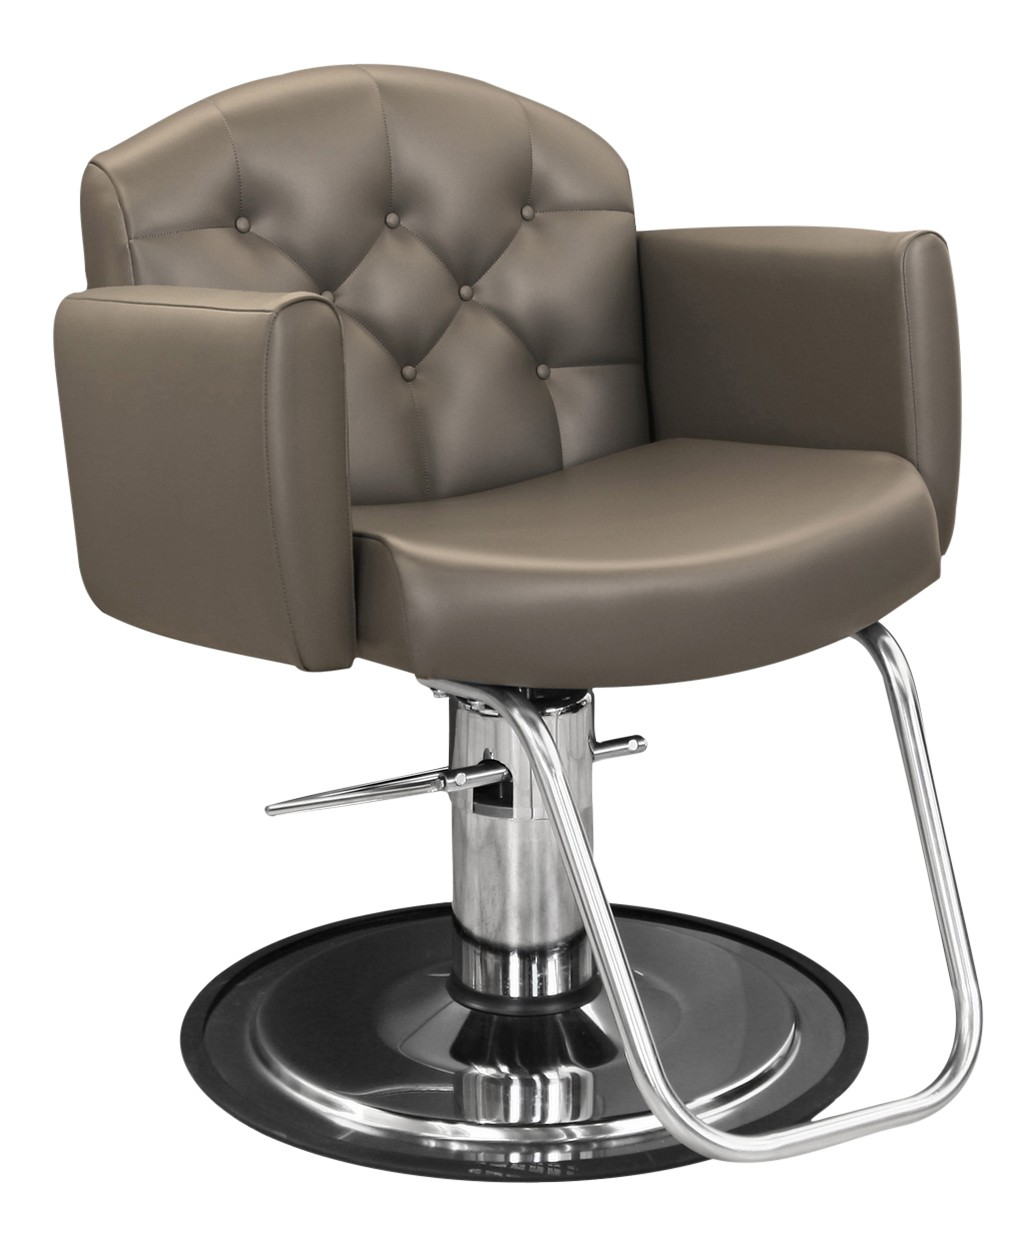 7100H Ashton Styling Chair Heavy-Duty Base